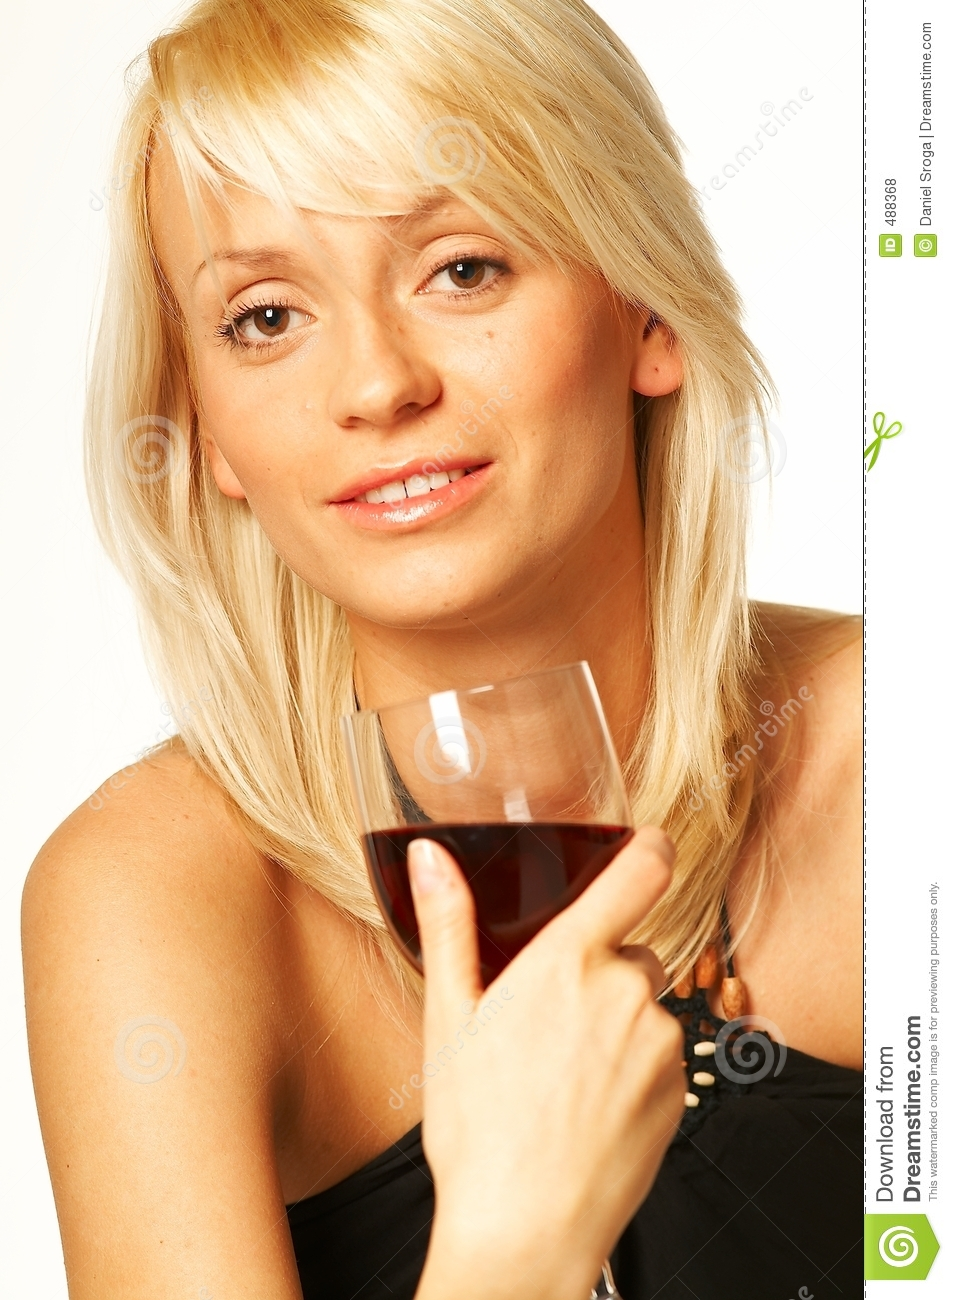 Blonde girl with glass of wine